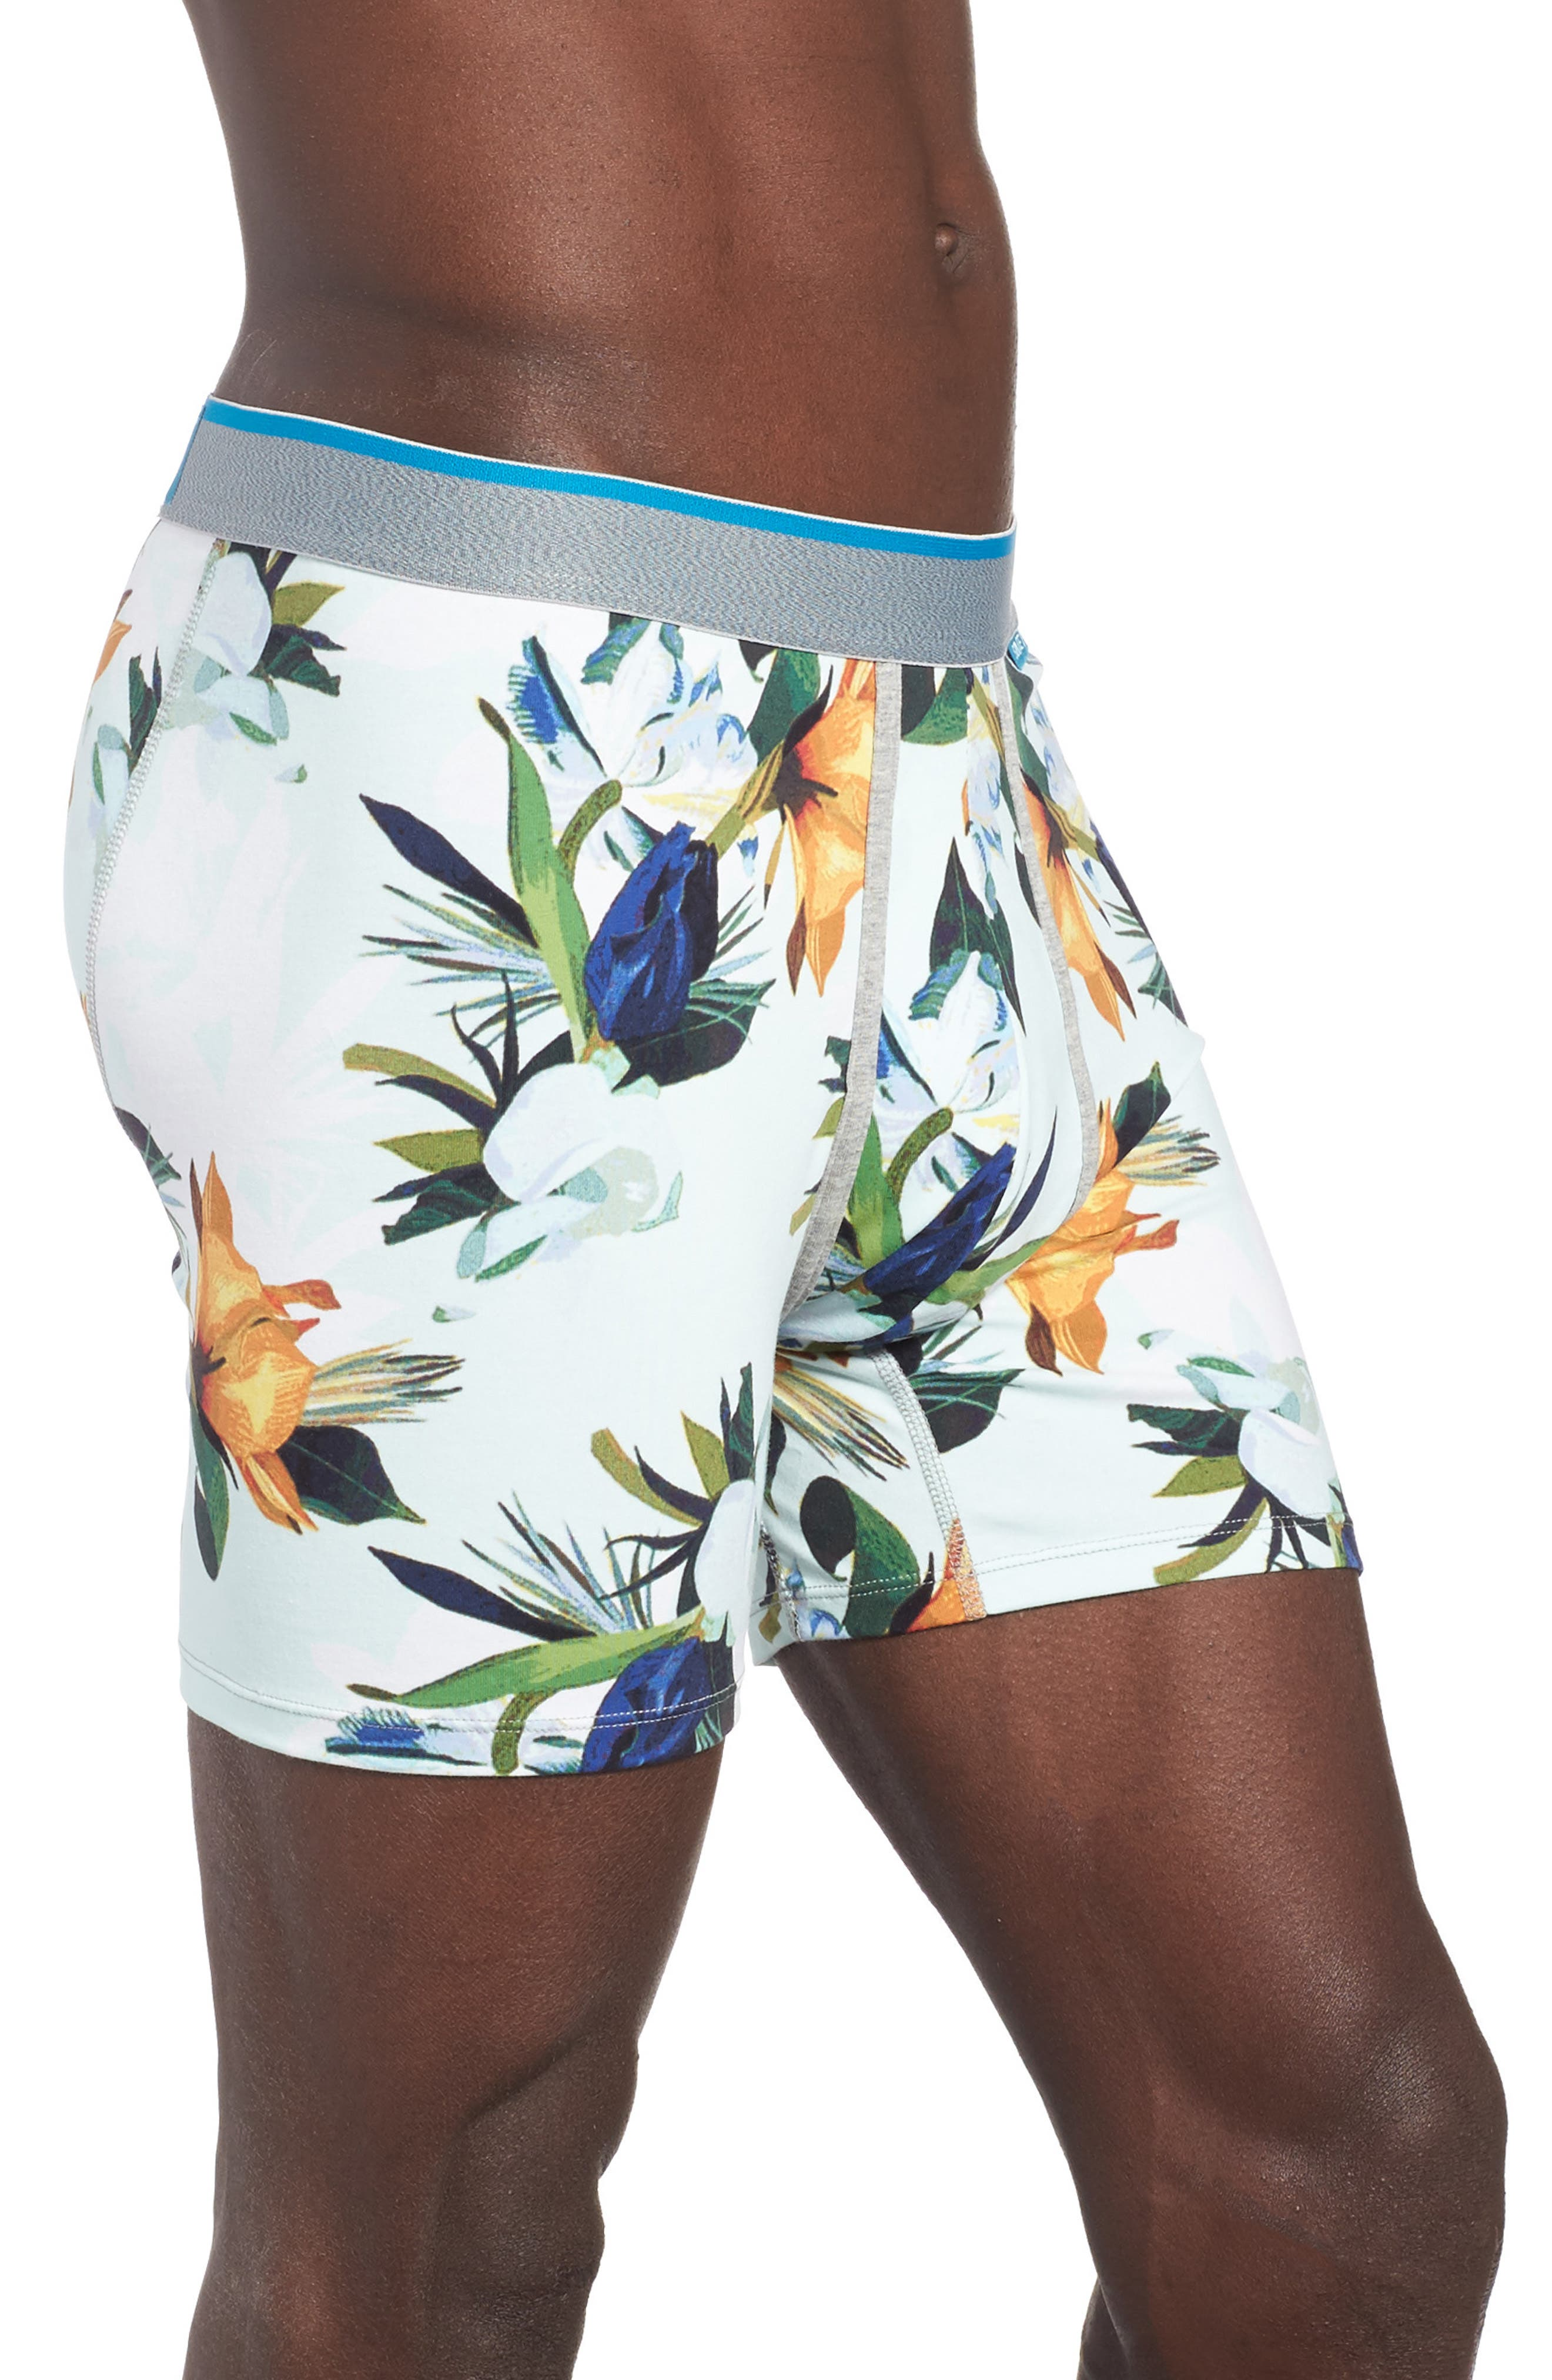 Aqua Floral Boxer Briefs,                             Alternate thumbnail 3, color,                             Medium Blue